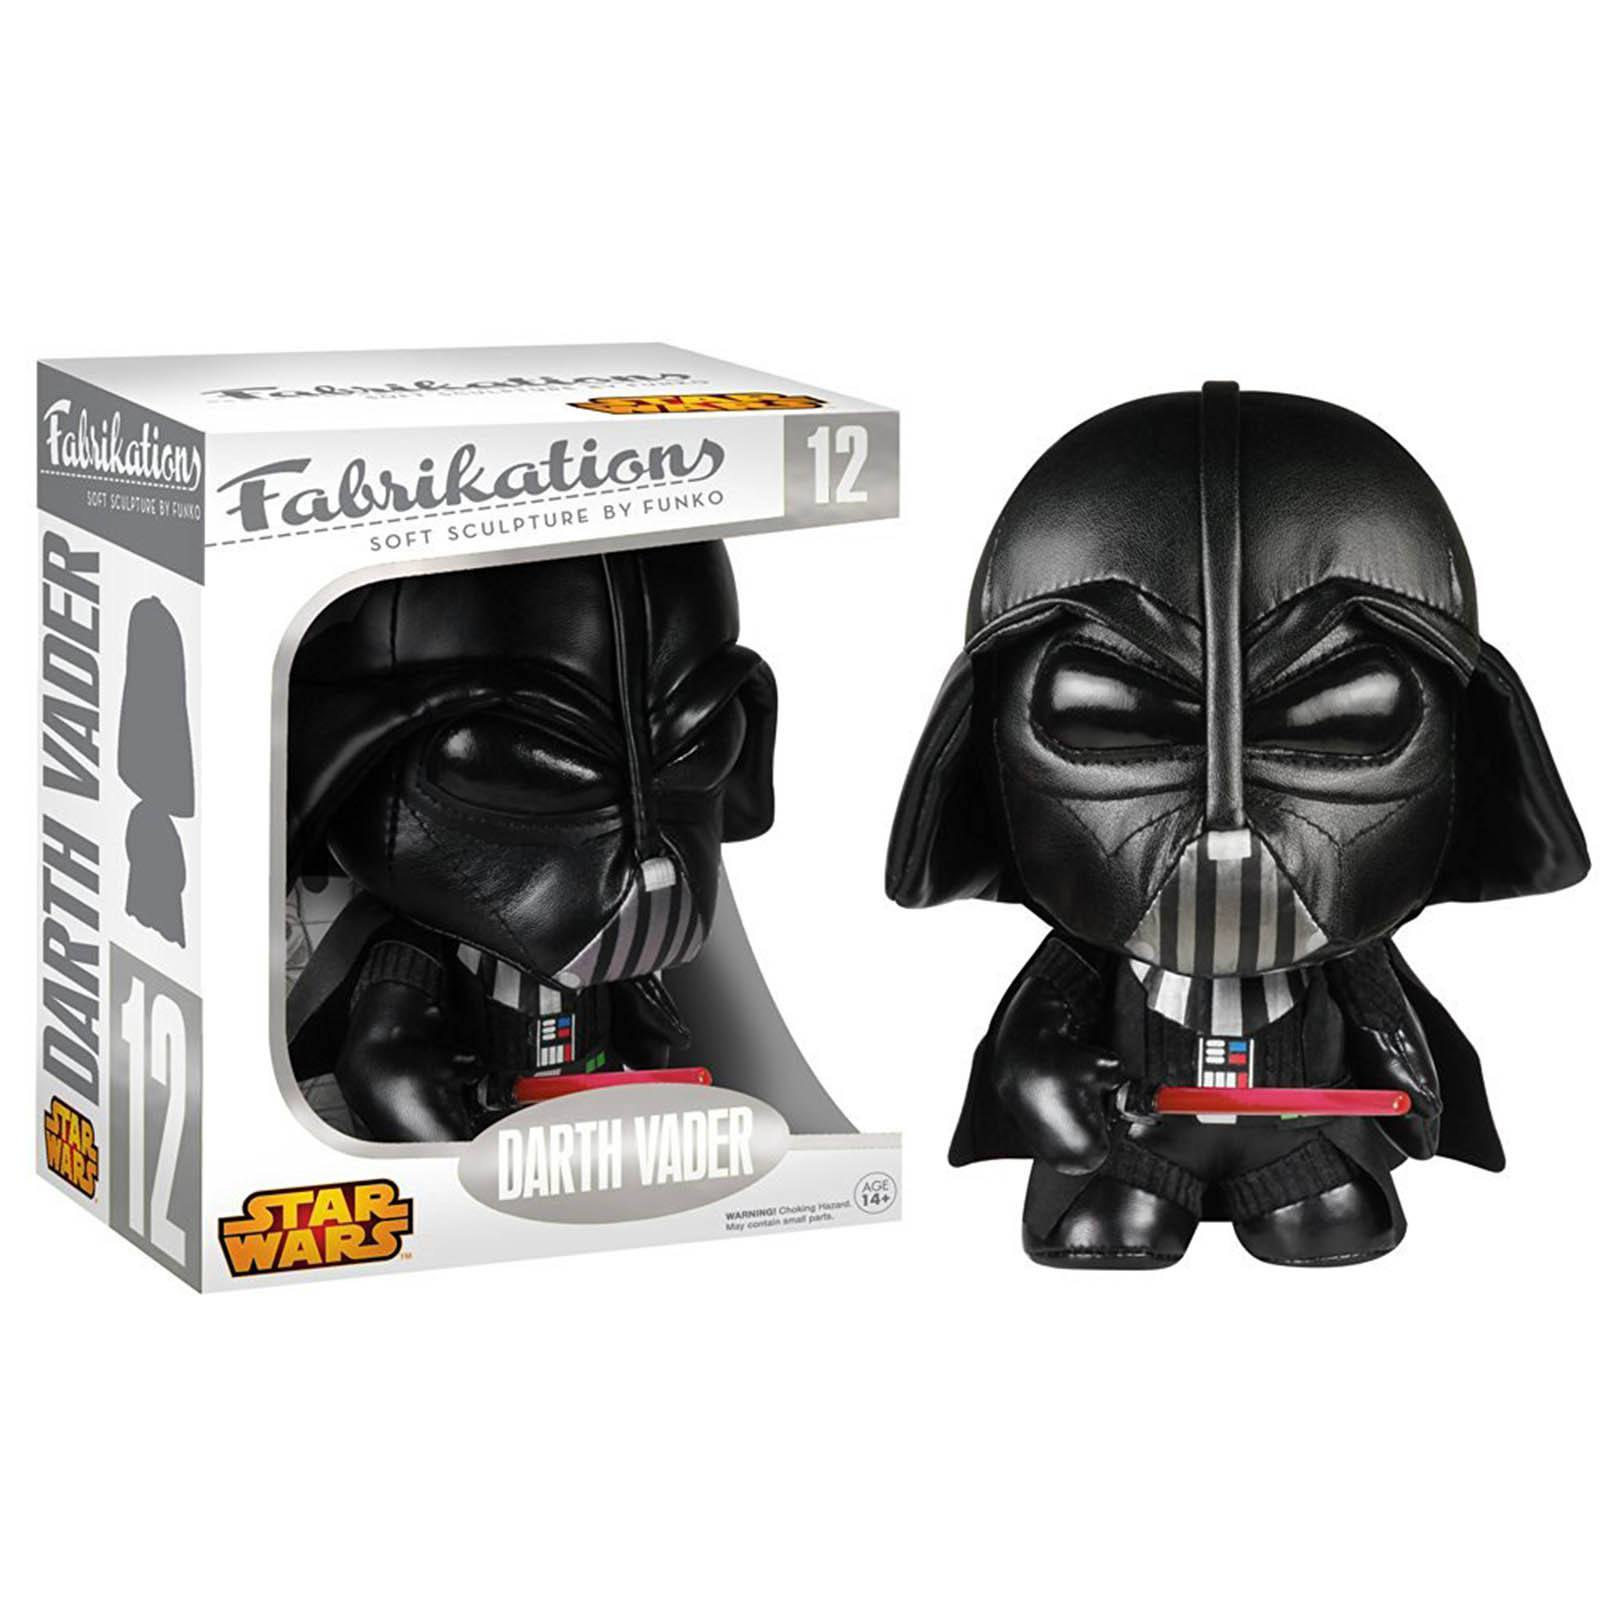 Funko Star Wars Fabrikations Darth Vader Plush Figure Radar Toys